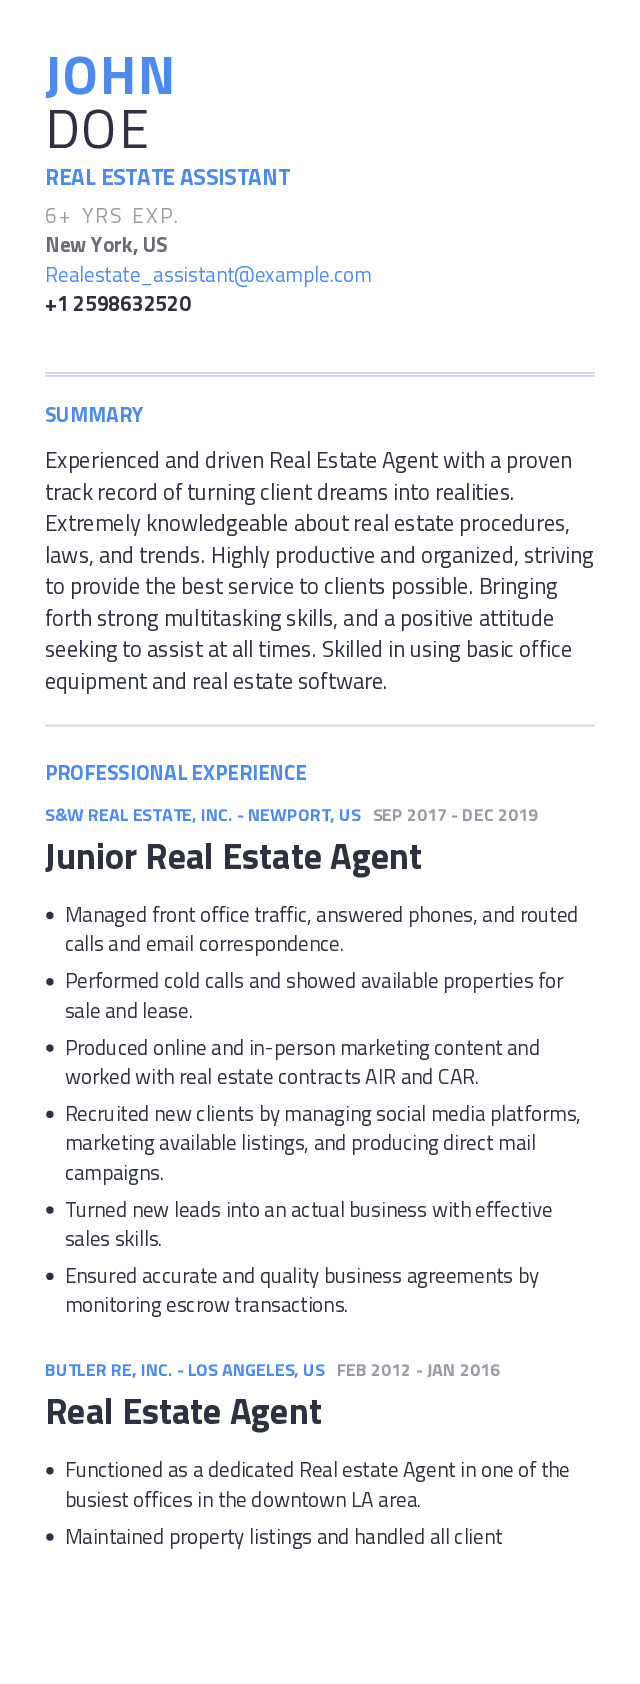 Real Estate Assistant Mobile Resume Example